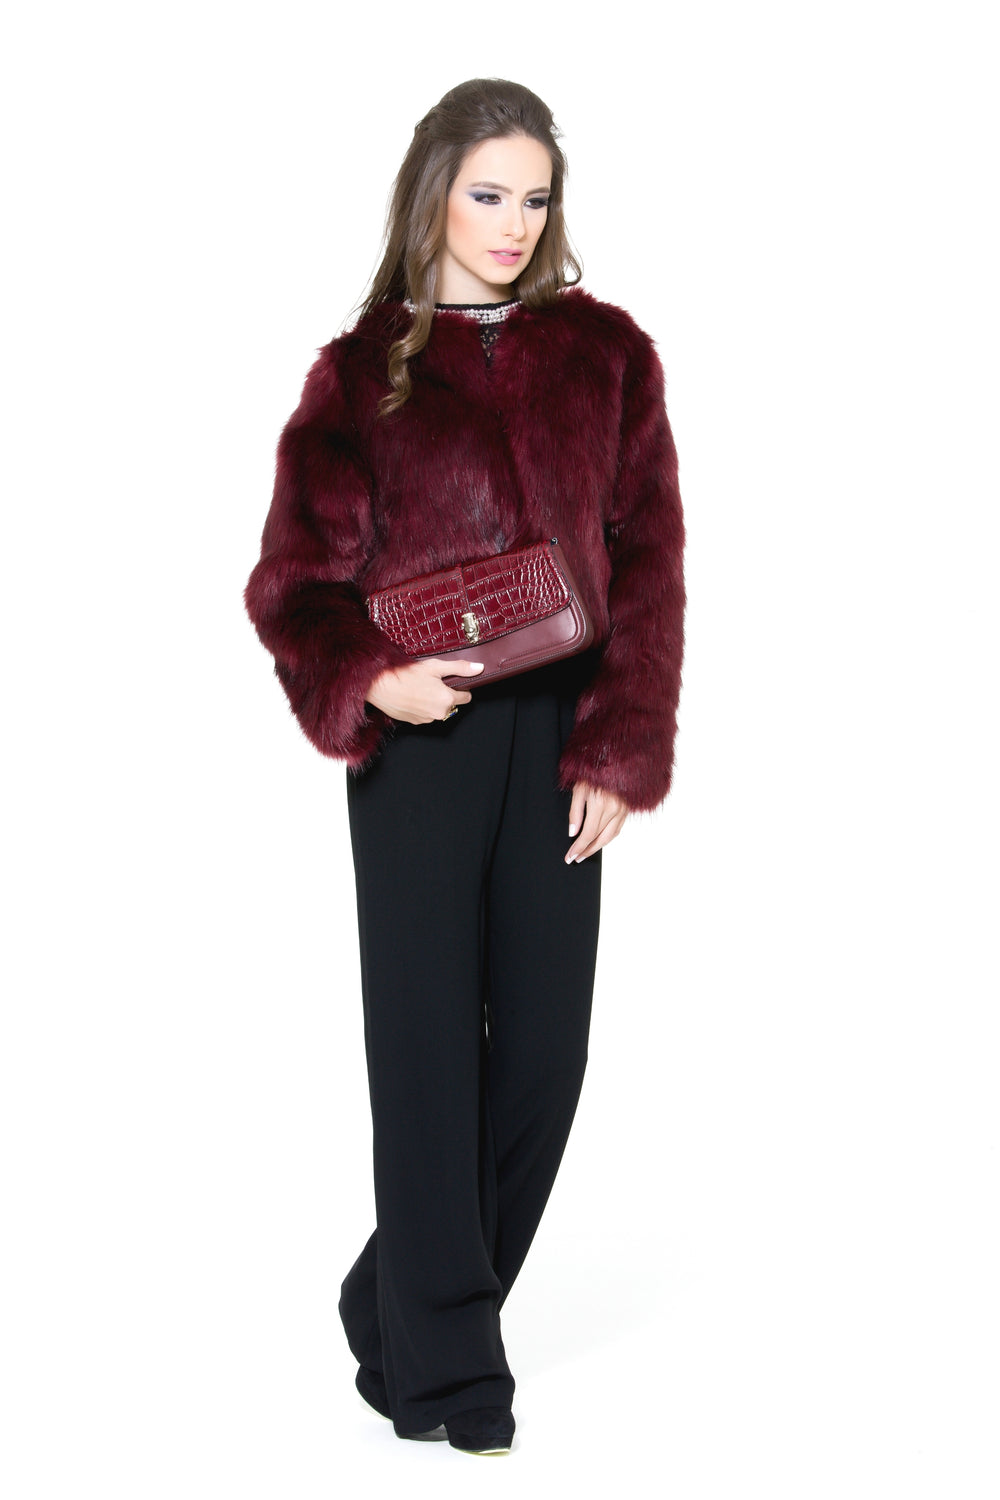 Maroon Fur Jacket, CJF - elilhaam.com